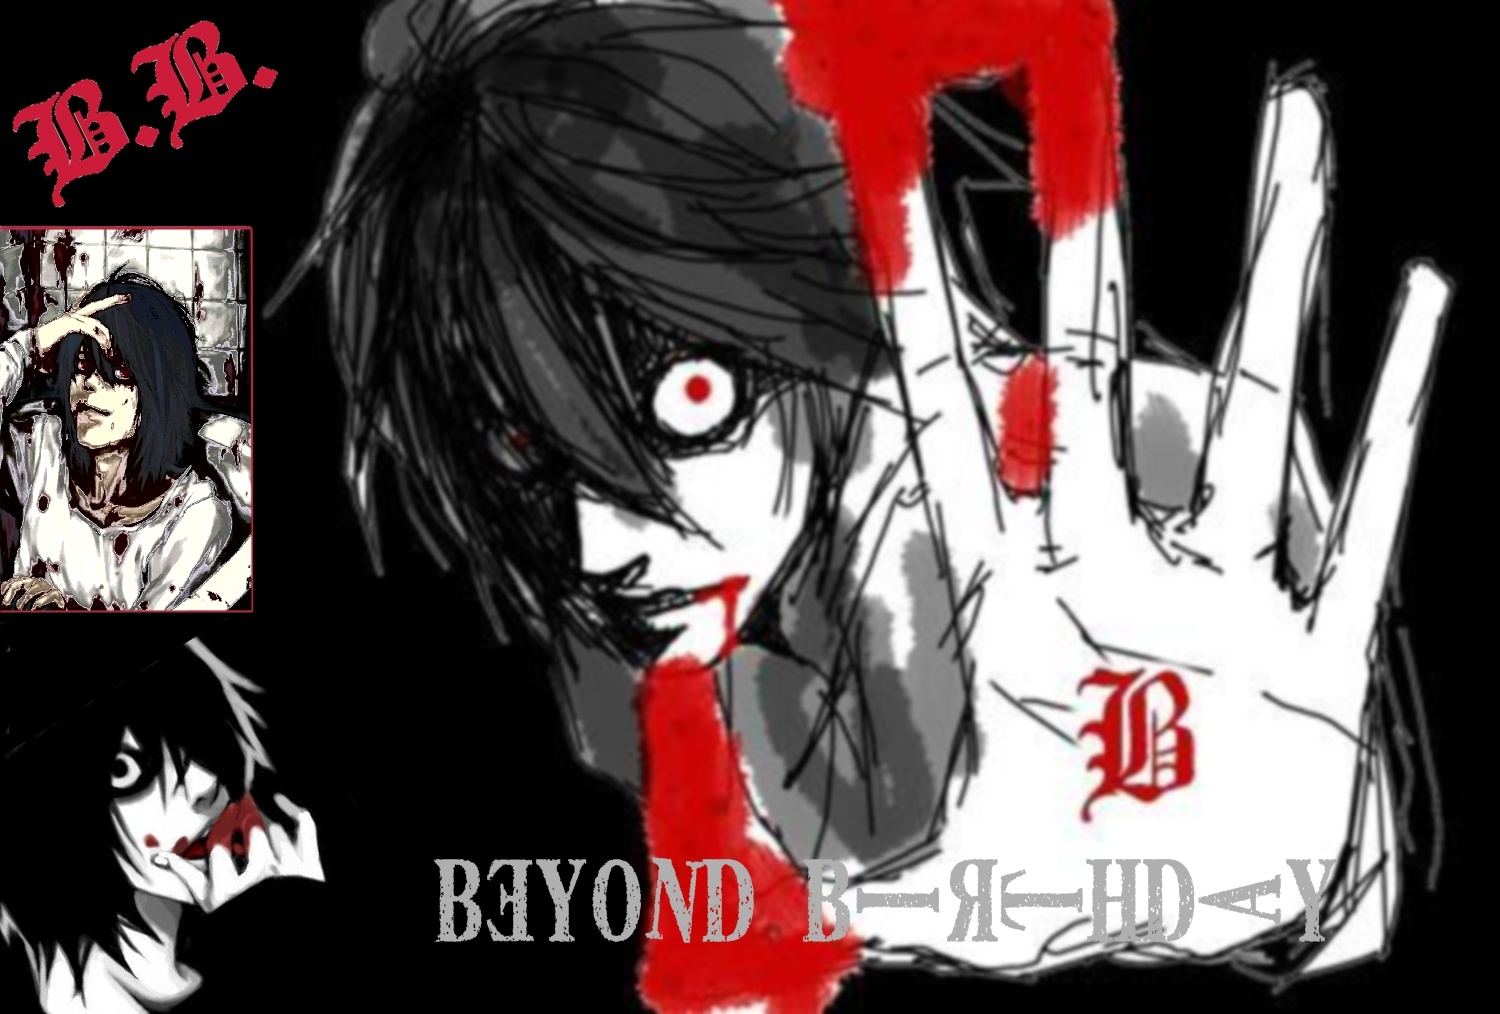 death note beyond birthday Death Note: Another Note images Beyond Birthday HD wallpaper and  death note beyond birthday